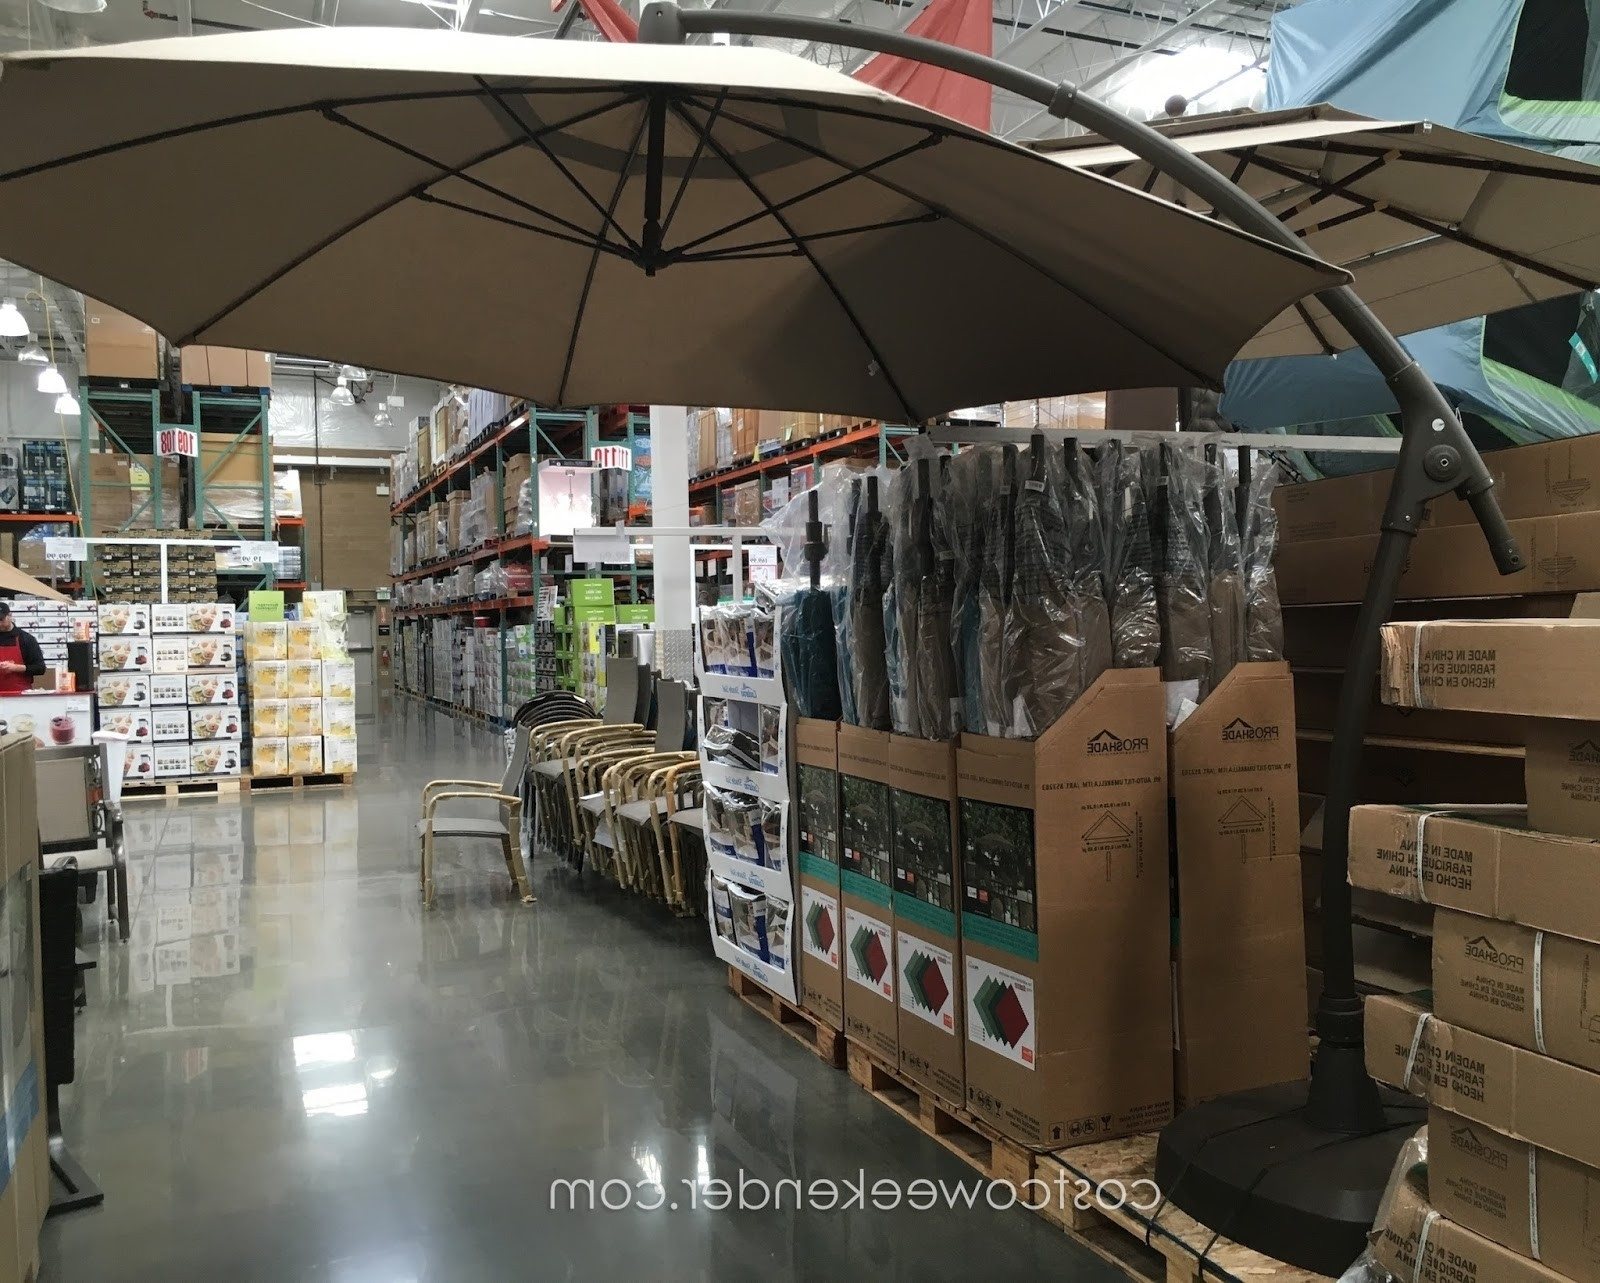 Widely Used Sunbrella Patio Umbrellas At Costco Inside 11 Cantilever Patio Umbrella With Base Treasure Garden Cantilever (View 19 of 20)